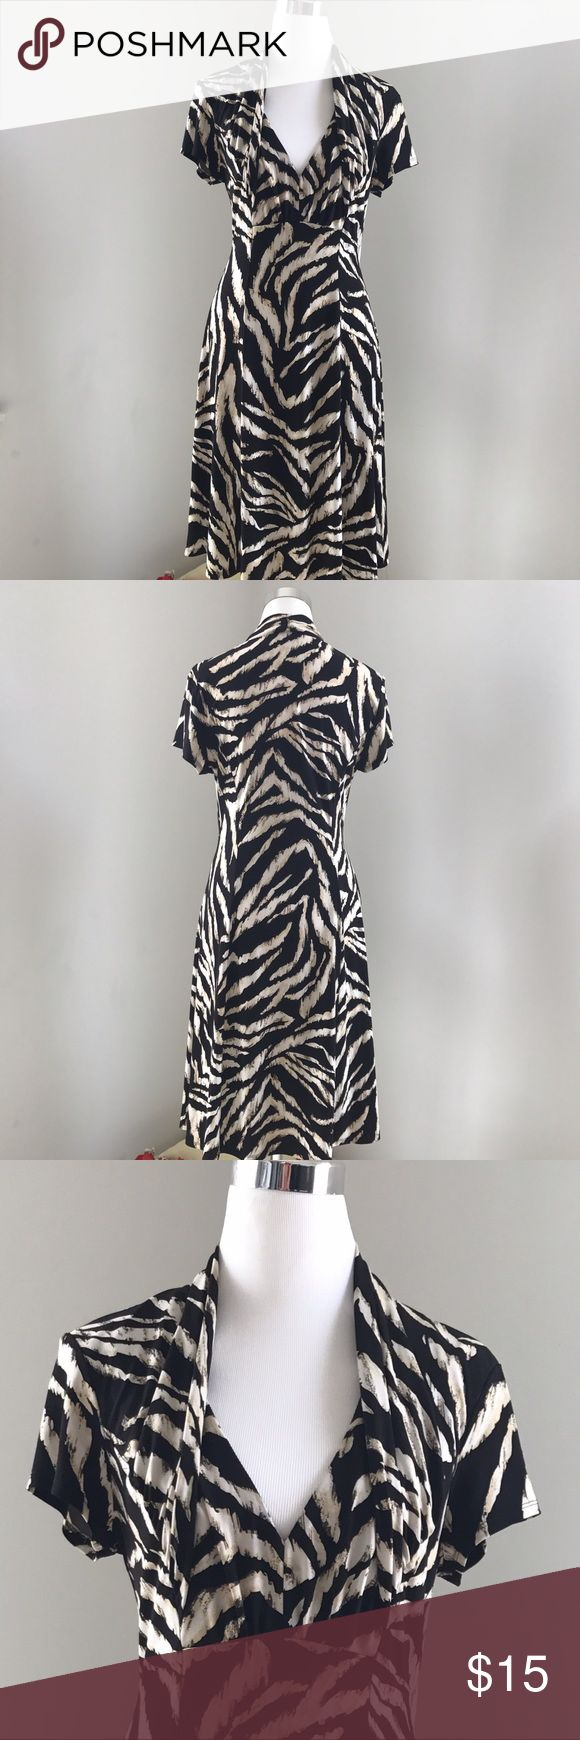 Connected Apparel Animal Print Dress Connected Apparel Black/Tan/Beige Animal Print Dress Short Sleeves V Neckline.  96% Polyester, 4% Spandex Short sleeves Machine wash cold, tumble dry low No buttons or zipper Lined bust    🎥For moving Visual visit my Instagram @Seamsewfitting414🎥 Connected Apparel Dresses Midi